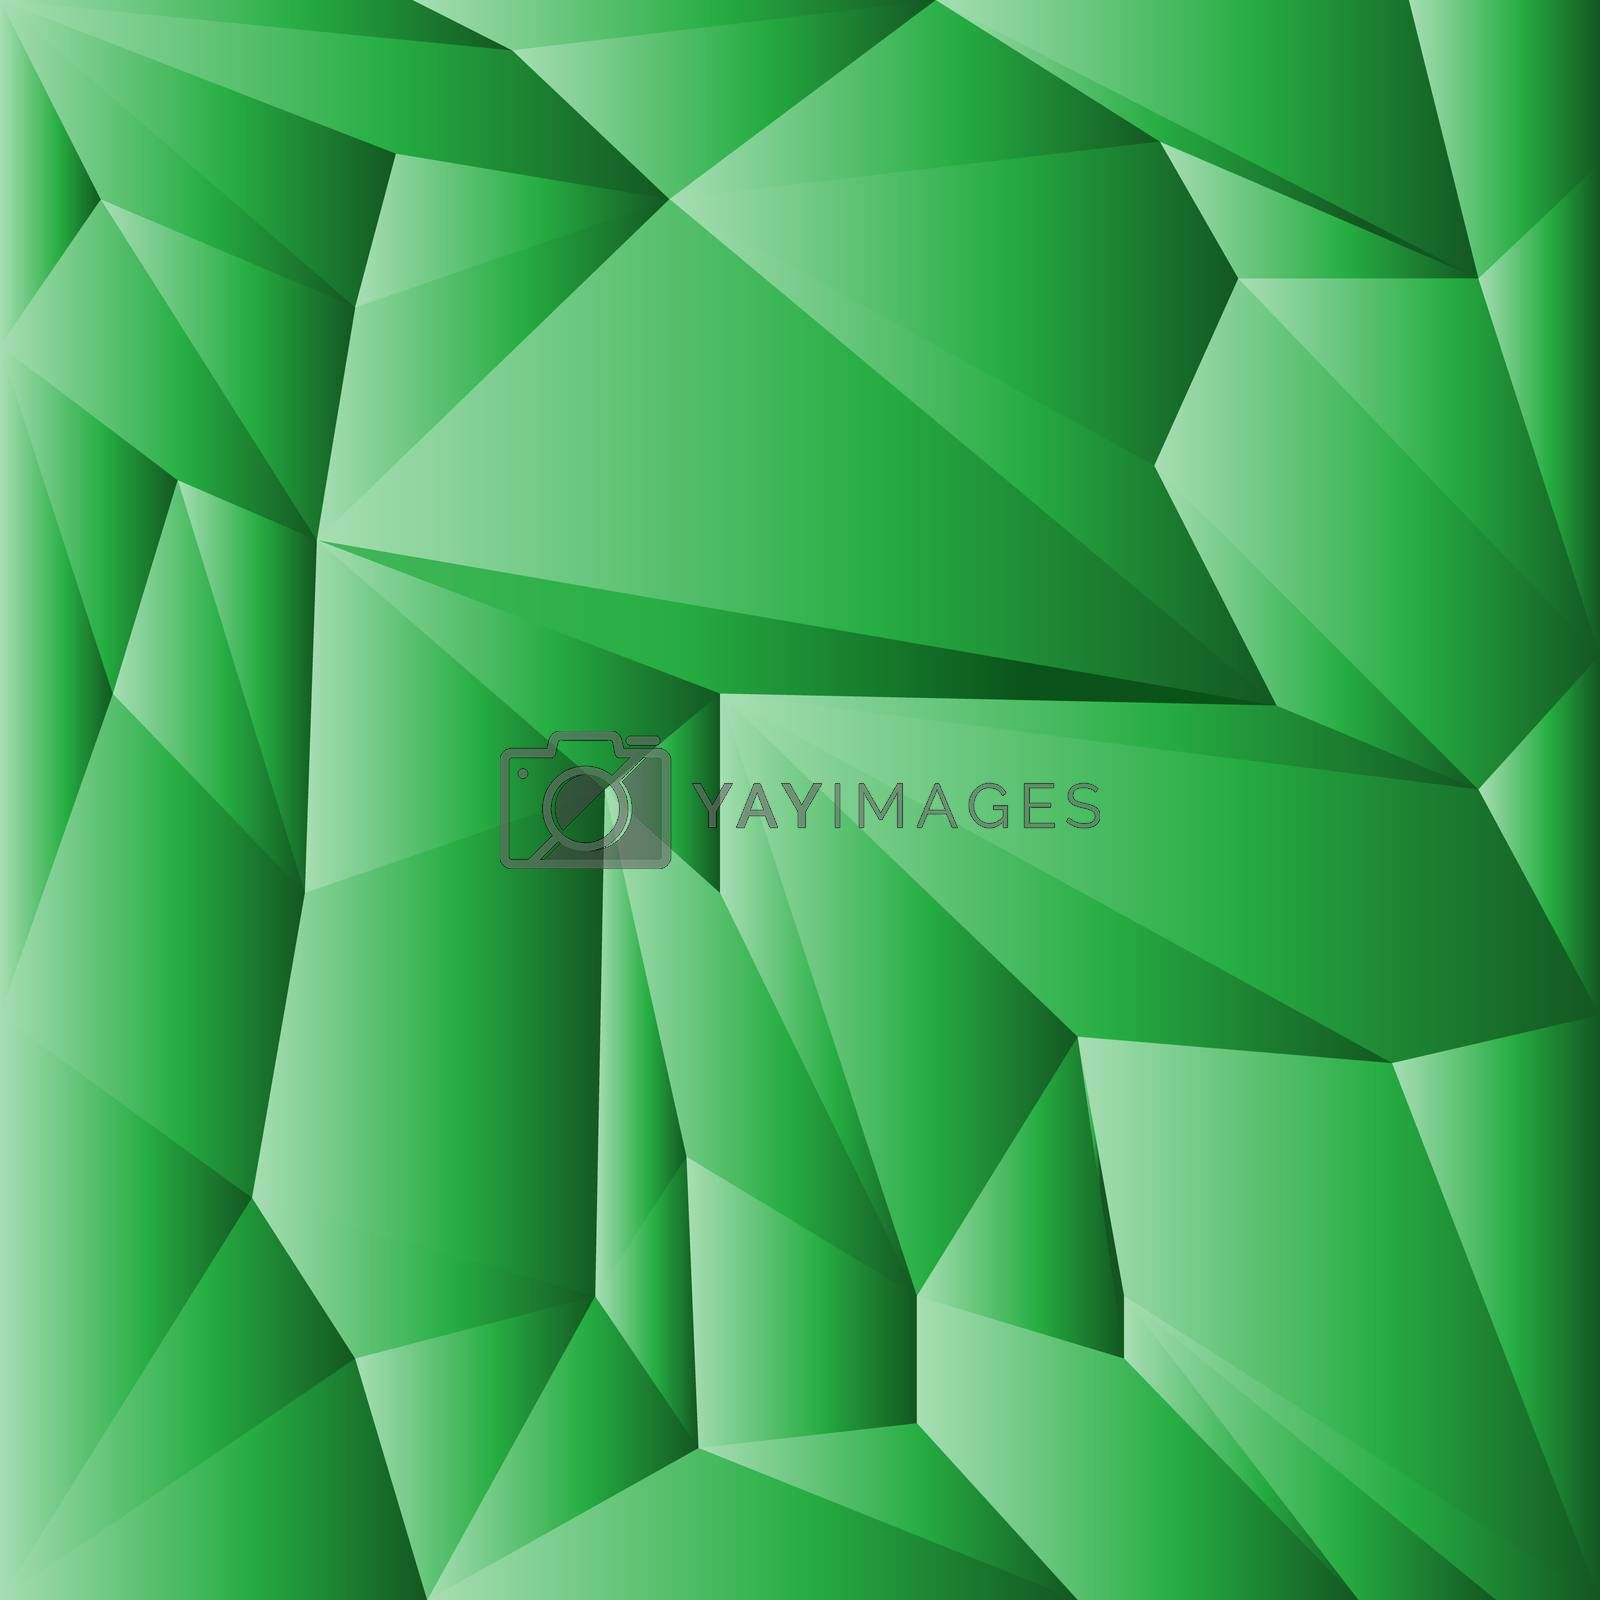 abstract geometric rumpled triangular low poly style vector illustration graphic background by Eskimos